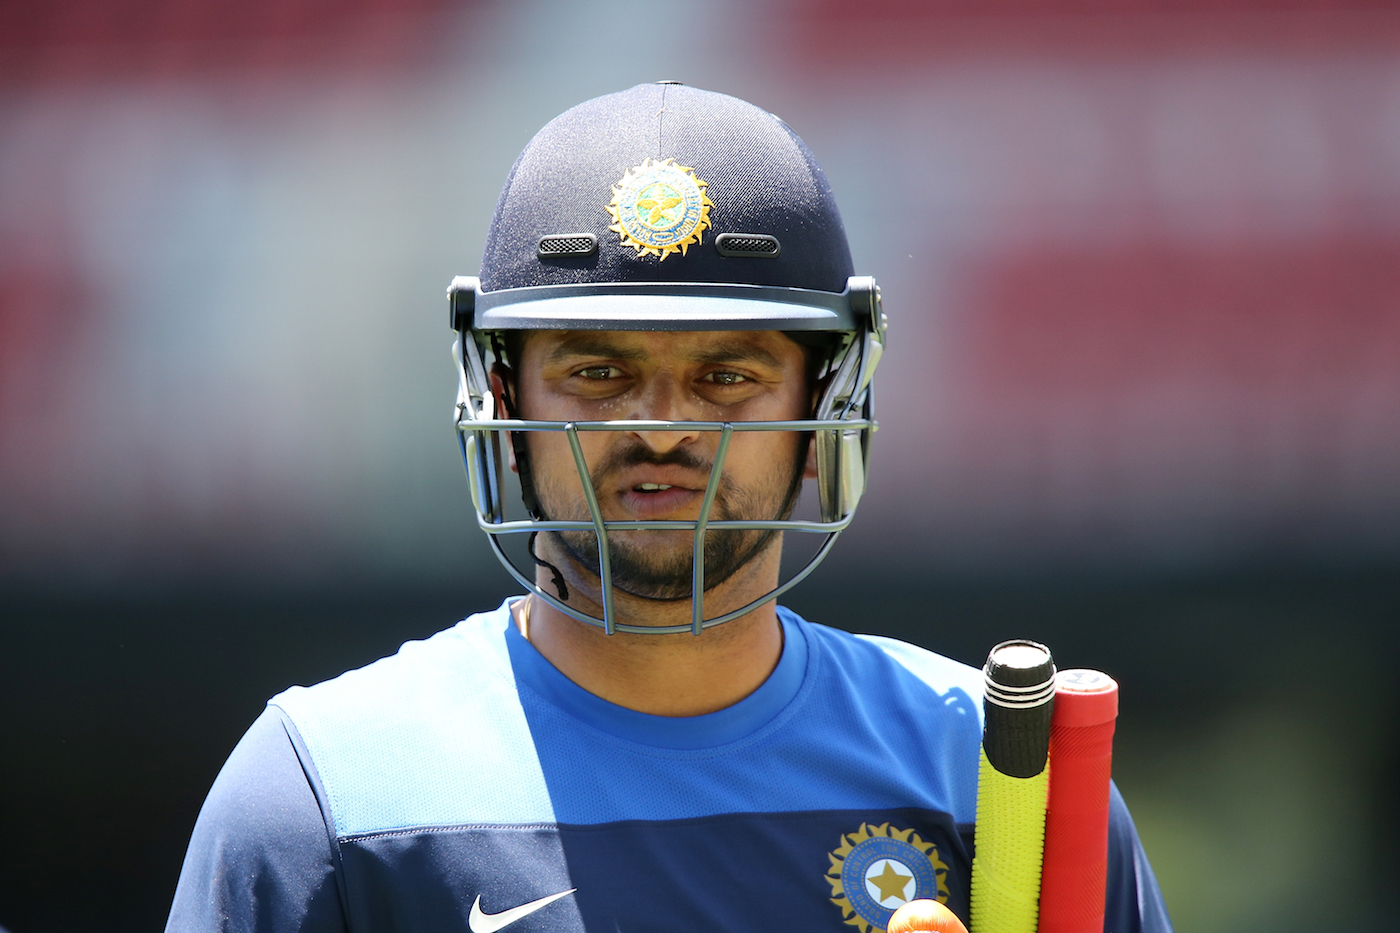 Suresh Raina trains in the nets